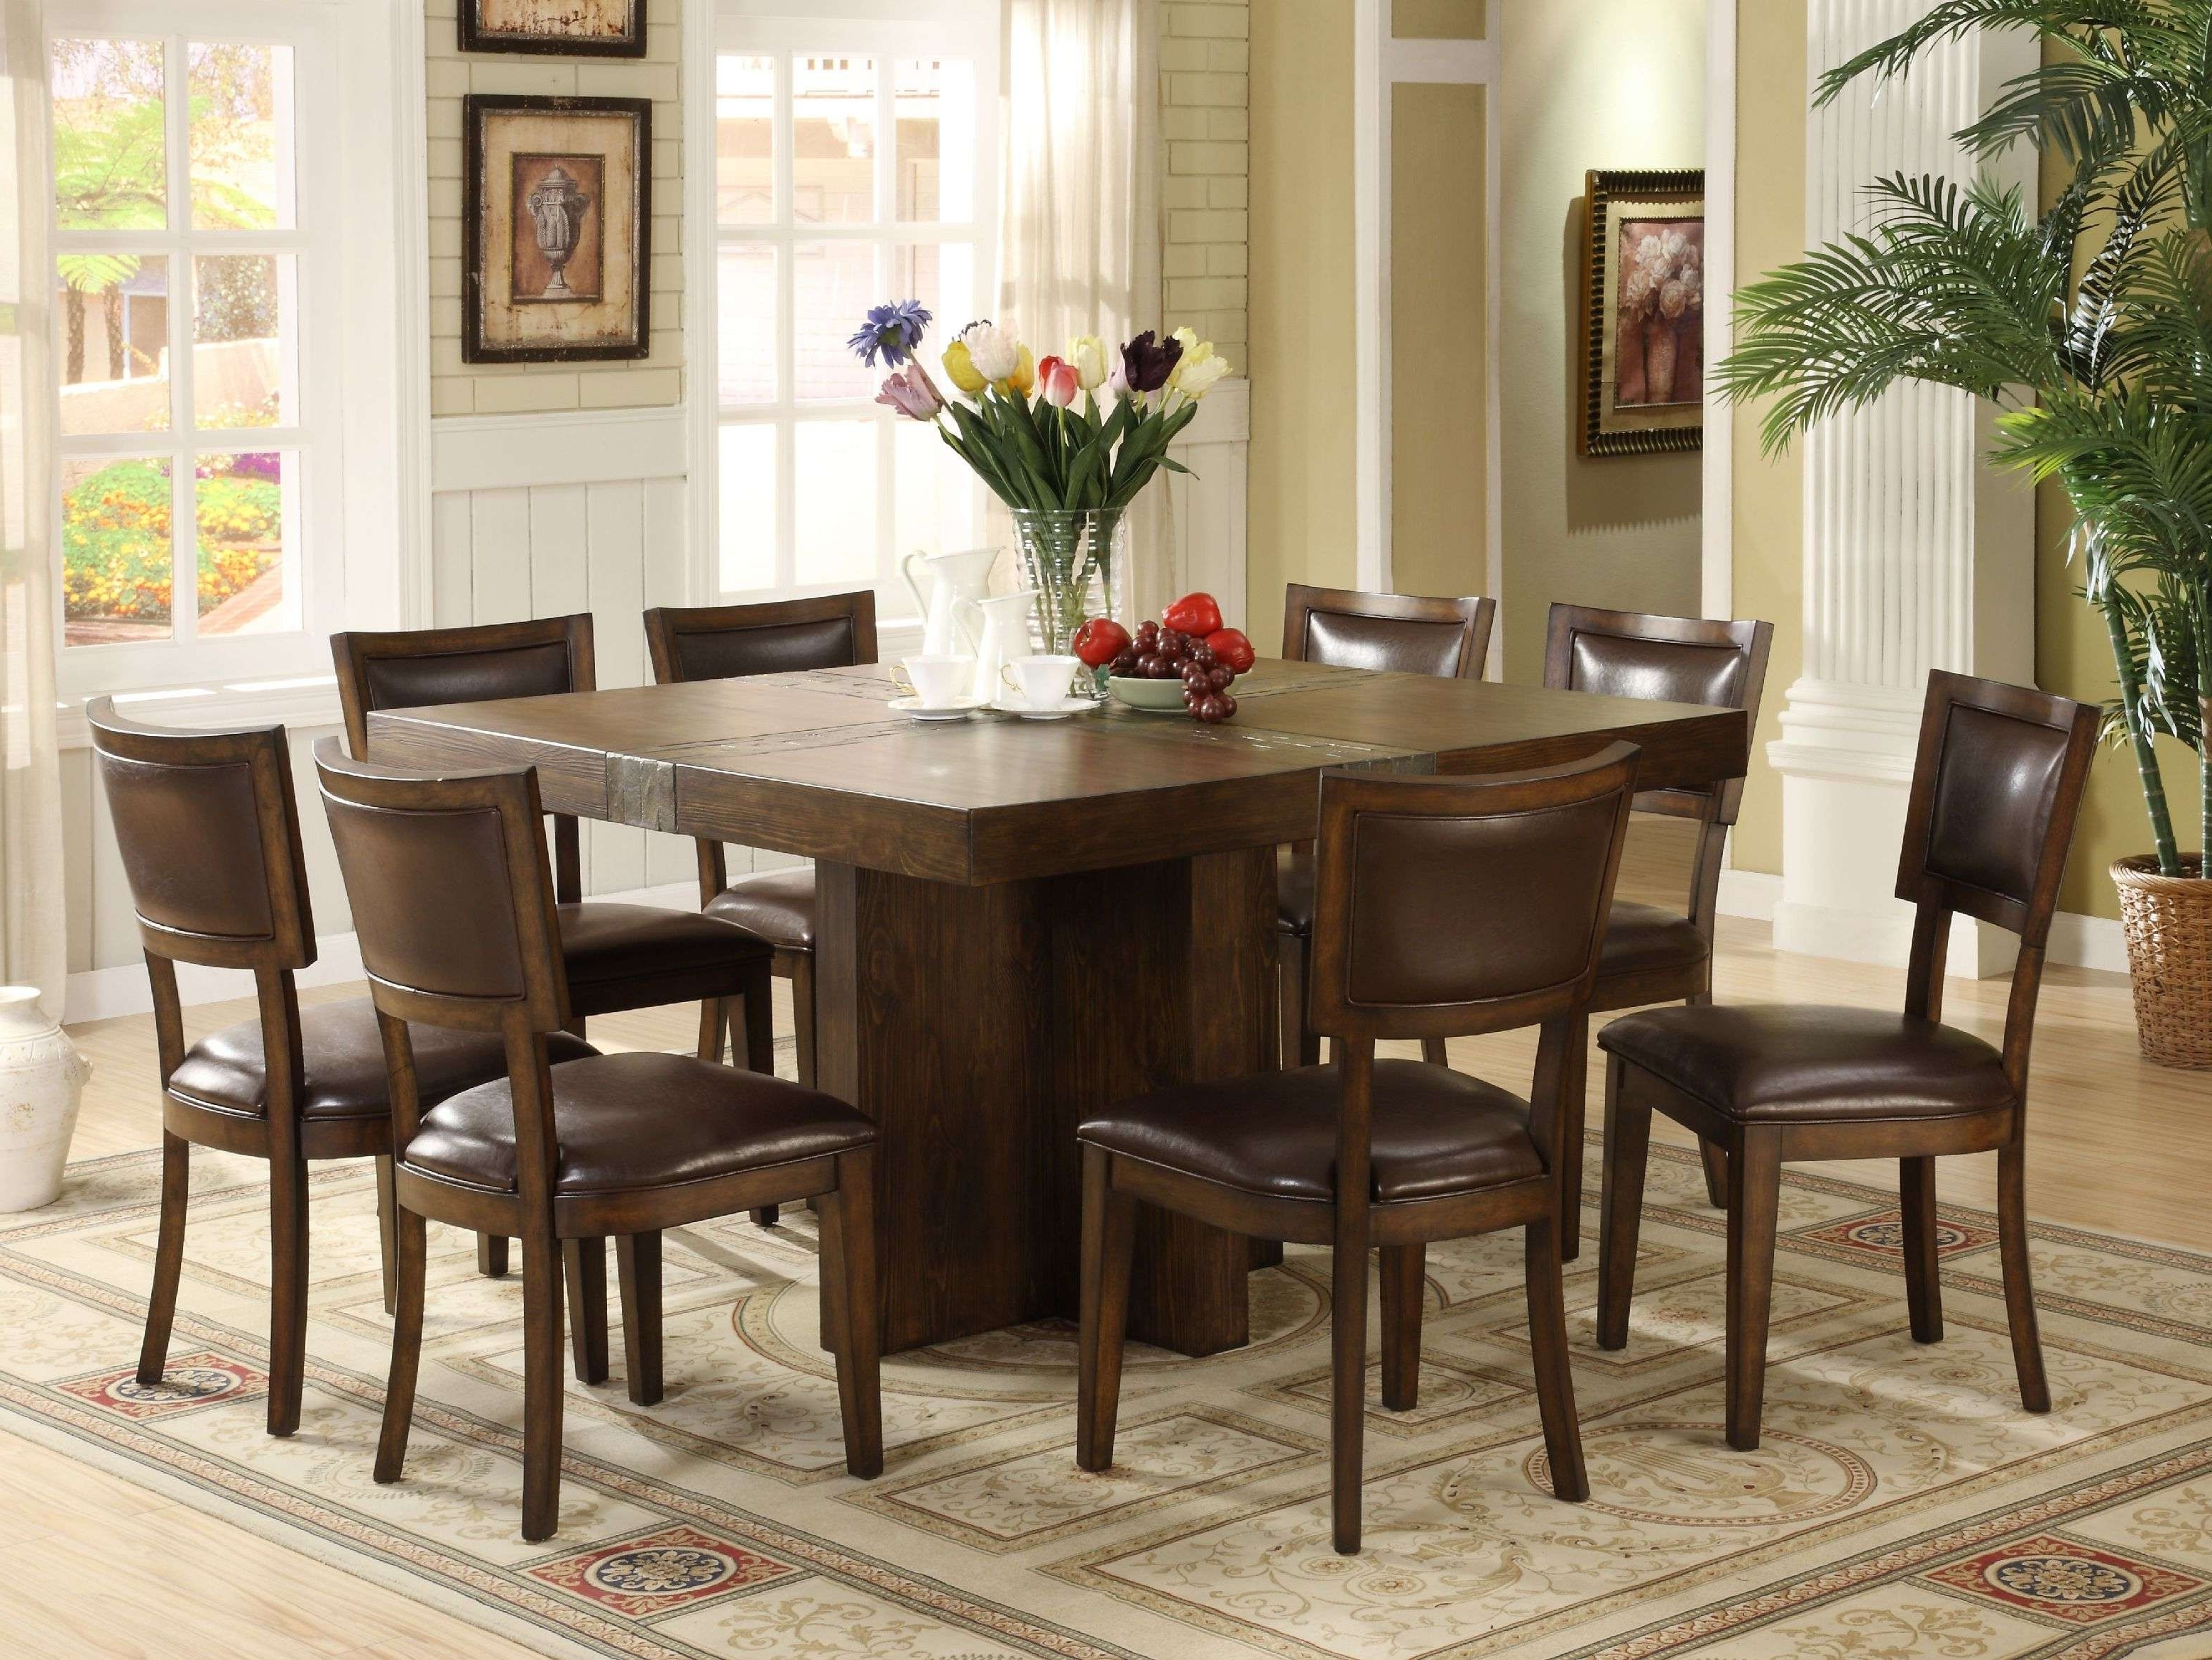 8 Seater Dining Tables And Chairs With Preferred 10 Seater Dining Table And Chairs Beautiful Best 8 Seater Dining (View 10 of 25)